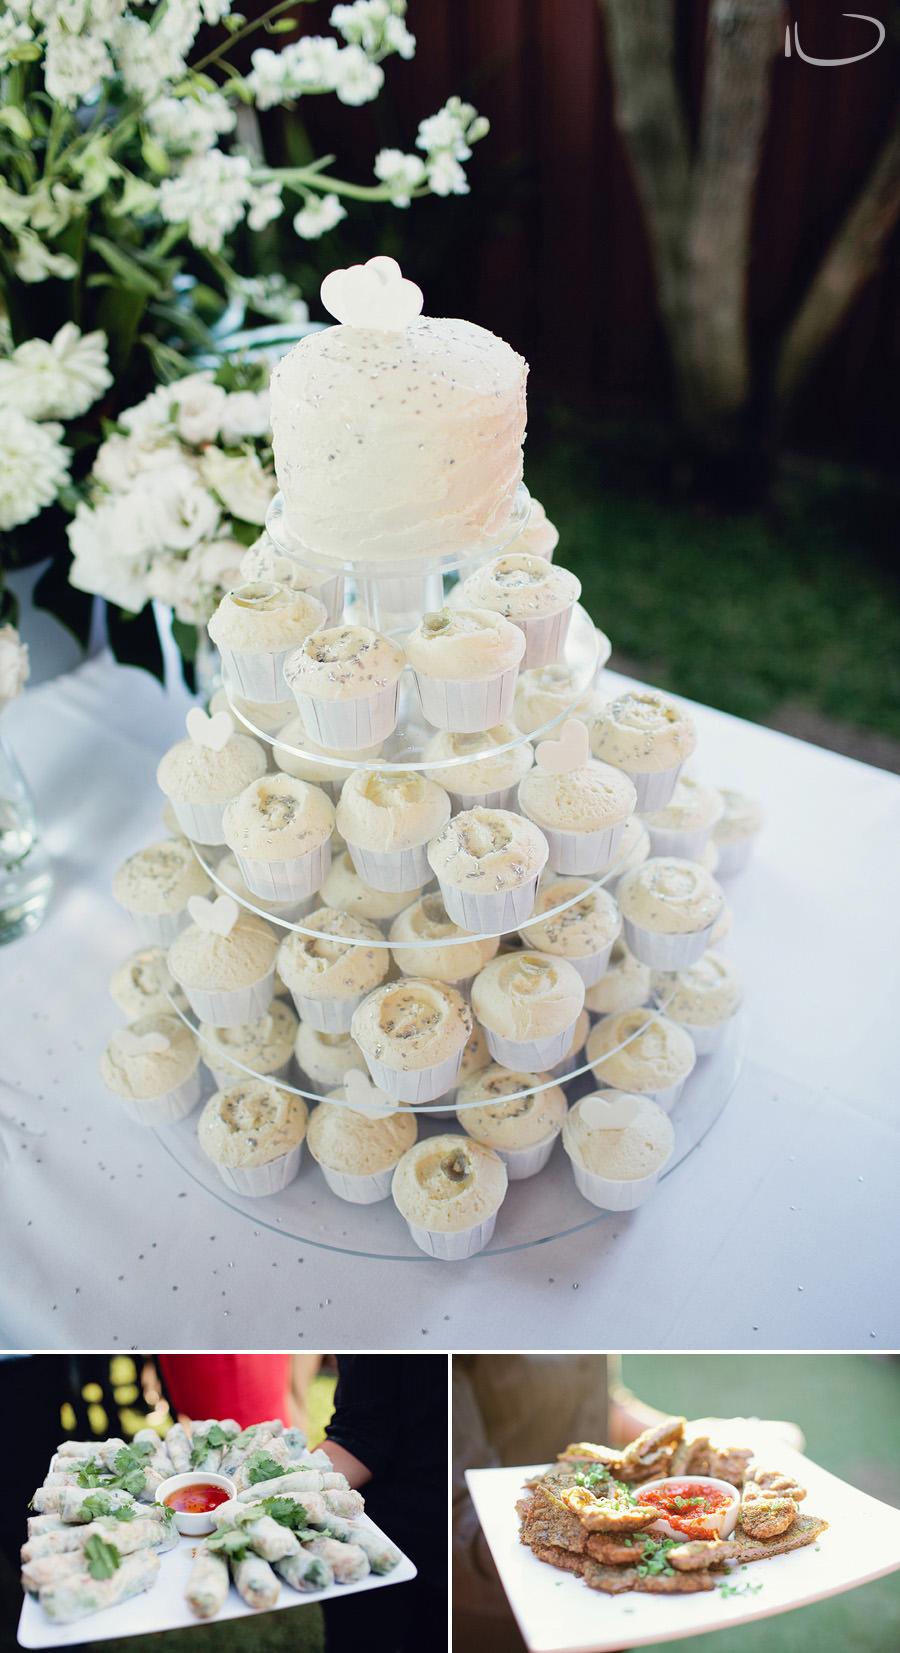 Editorial Wedding Photography: Cupcake Wedding cake